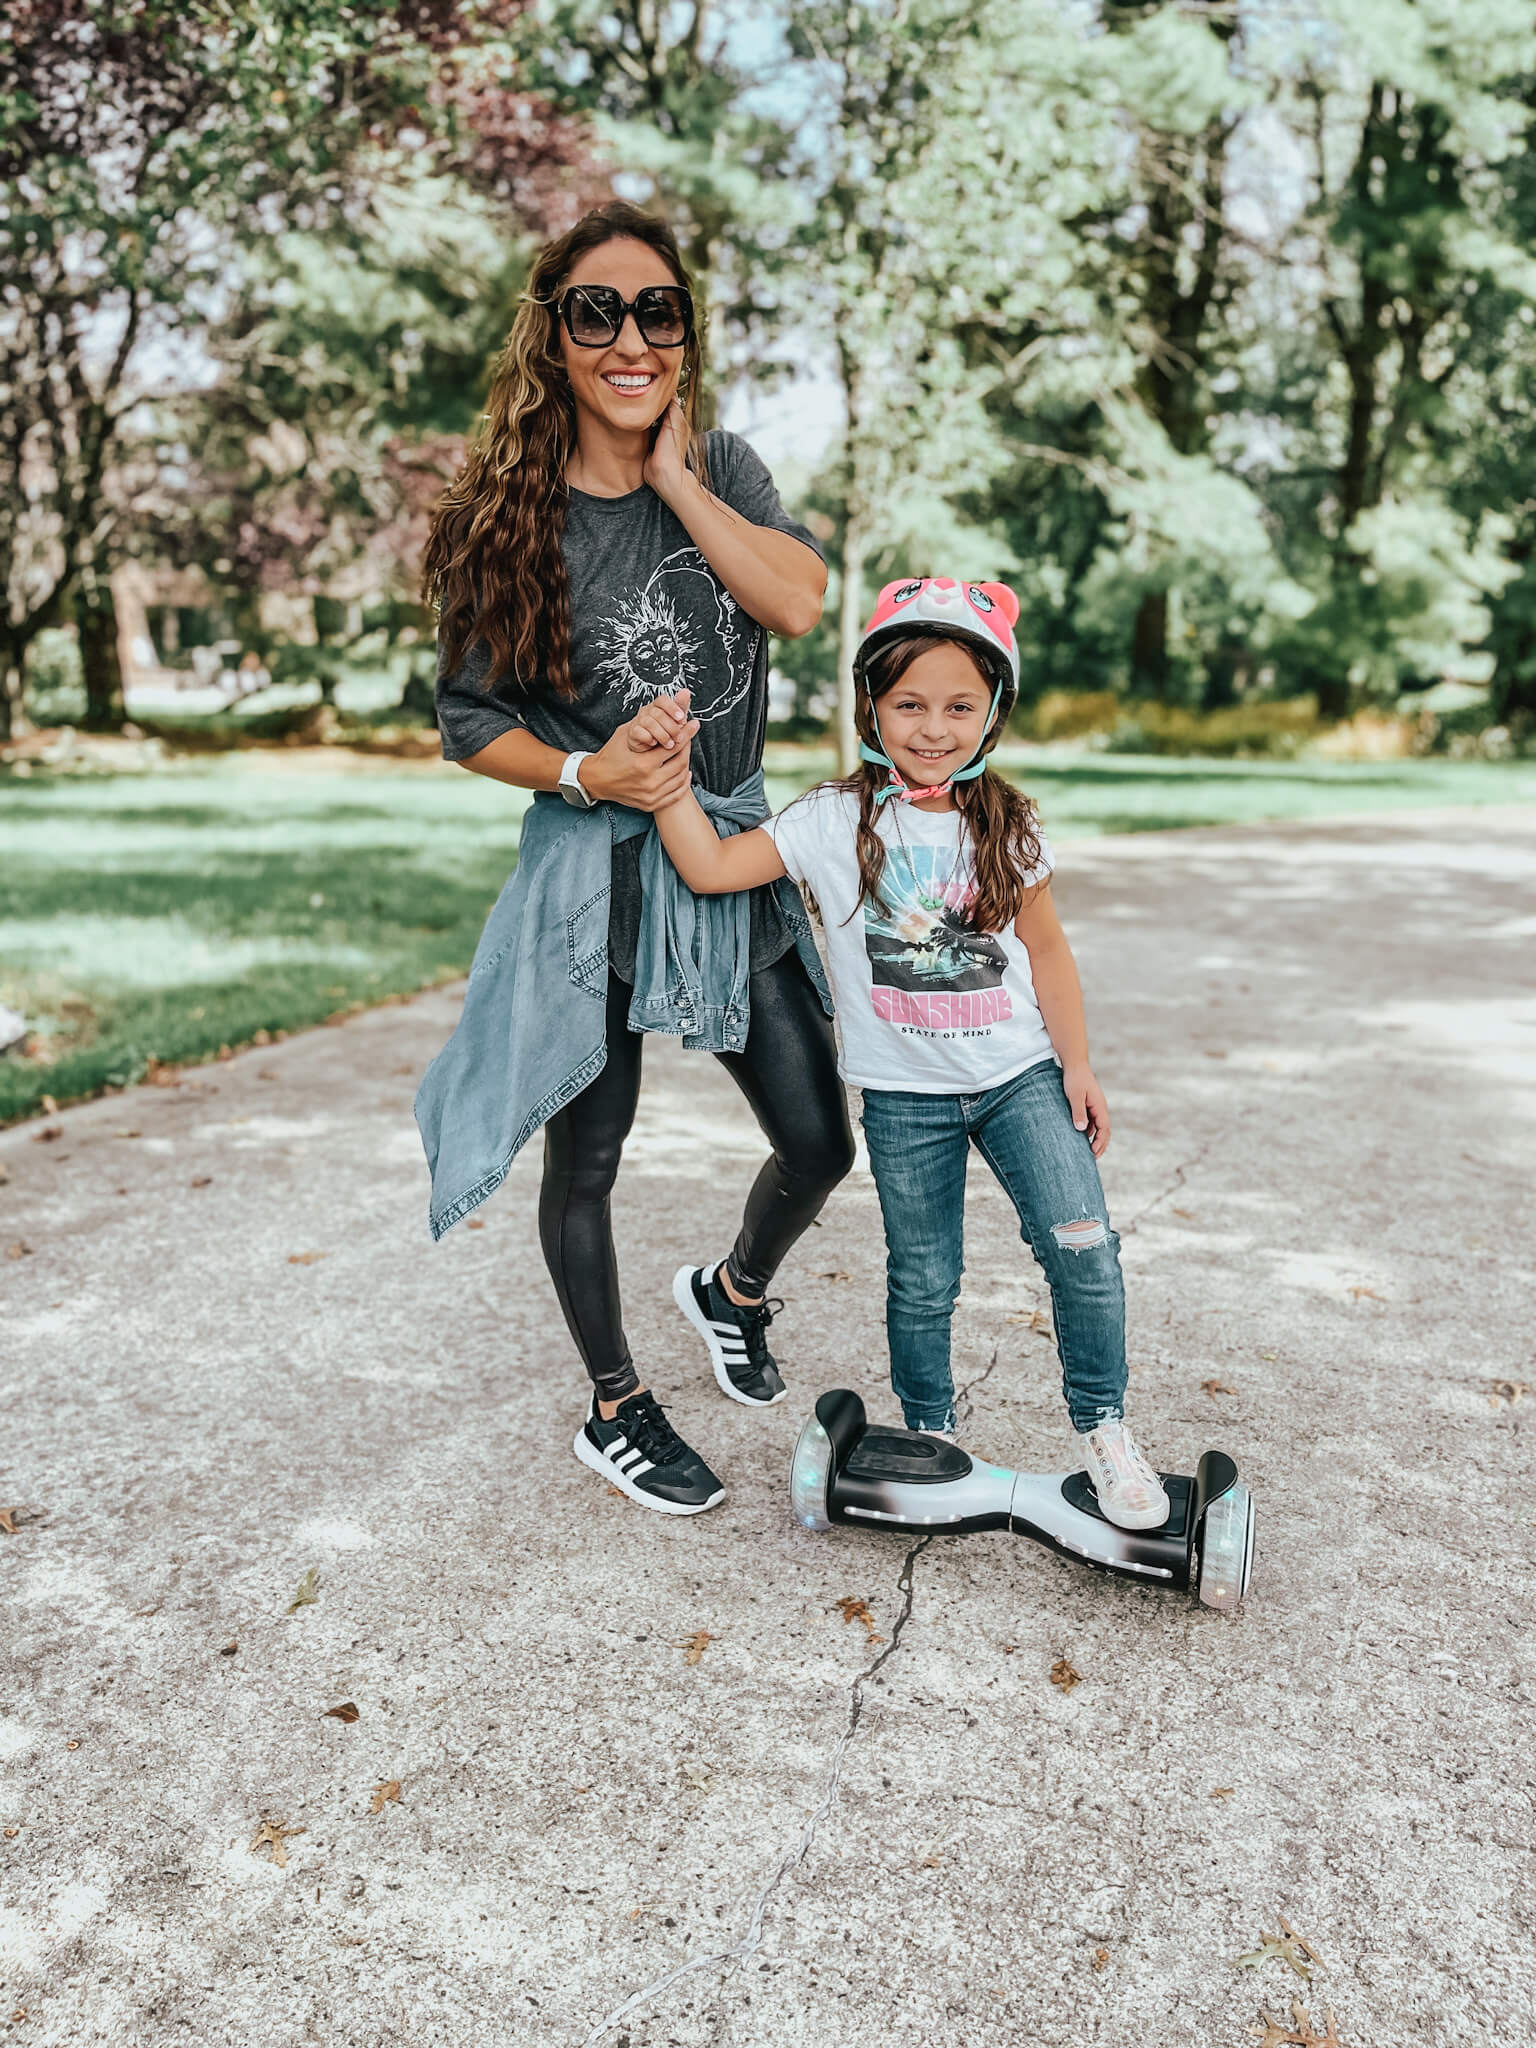 mom and daughter on hoverboard - outdoor gifts for kids